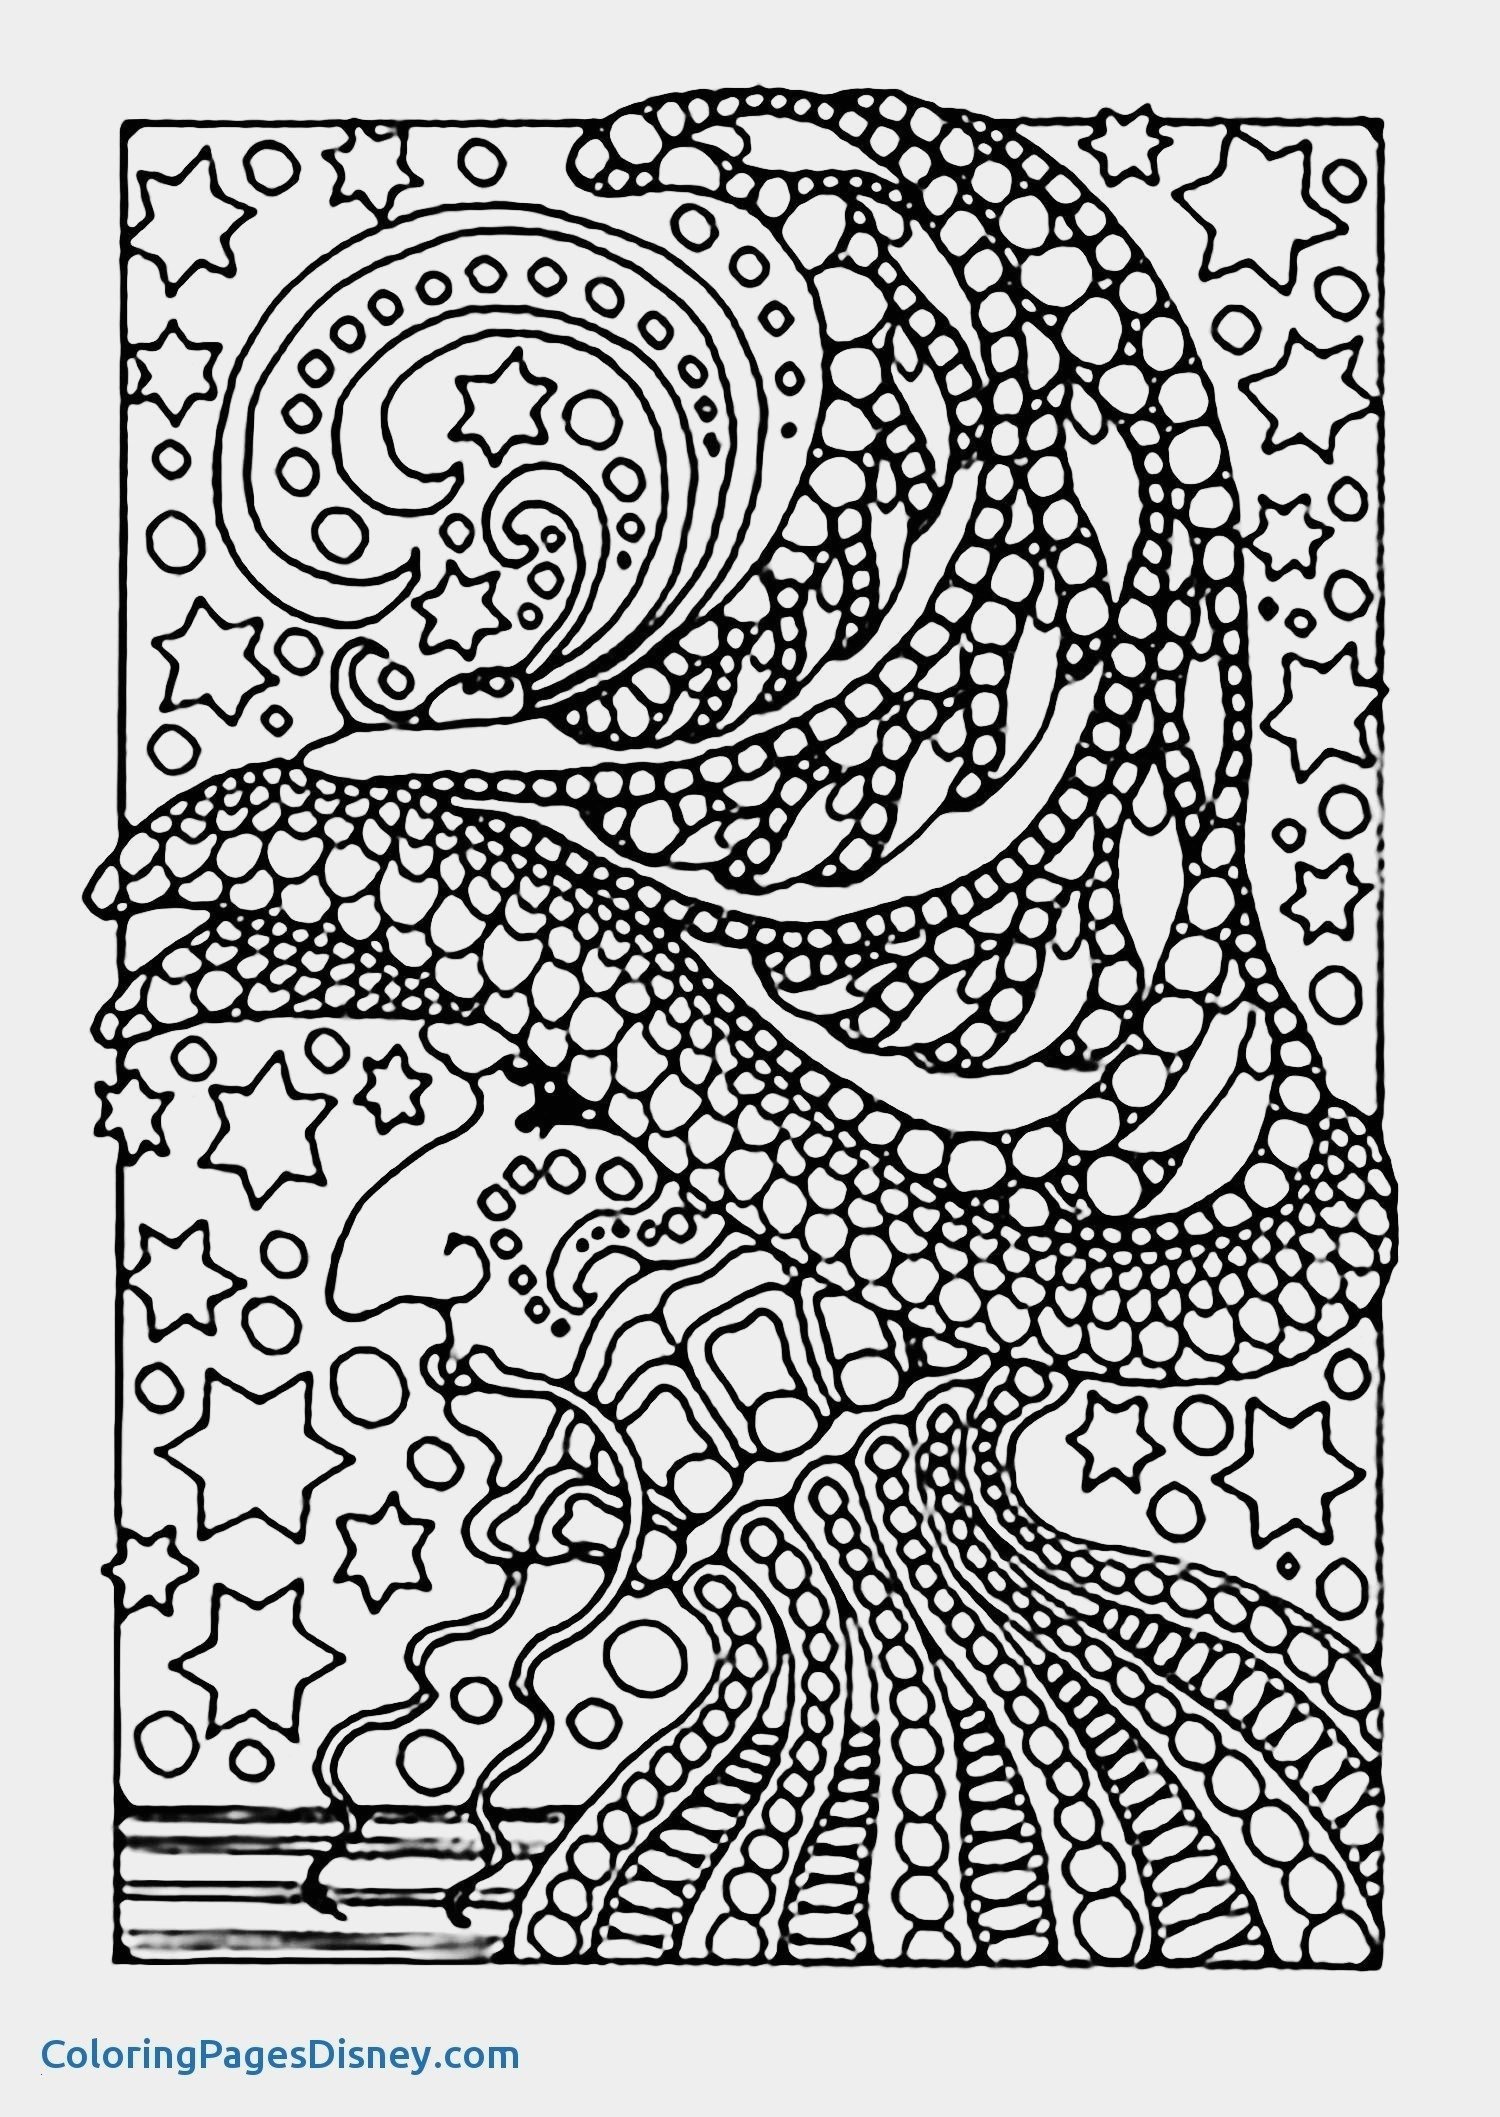 intricate mandala coloring pages Collection-plex Coloring Pages Free Printable Plex Coloring Books 21csb 13-o